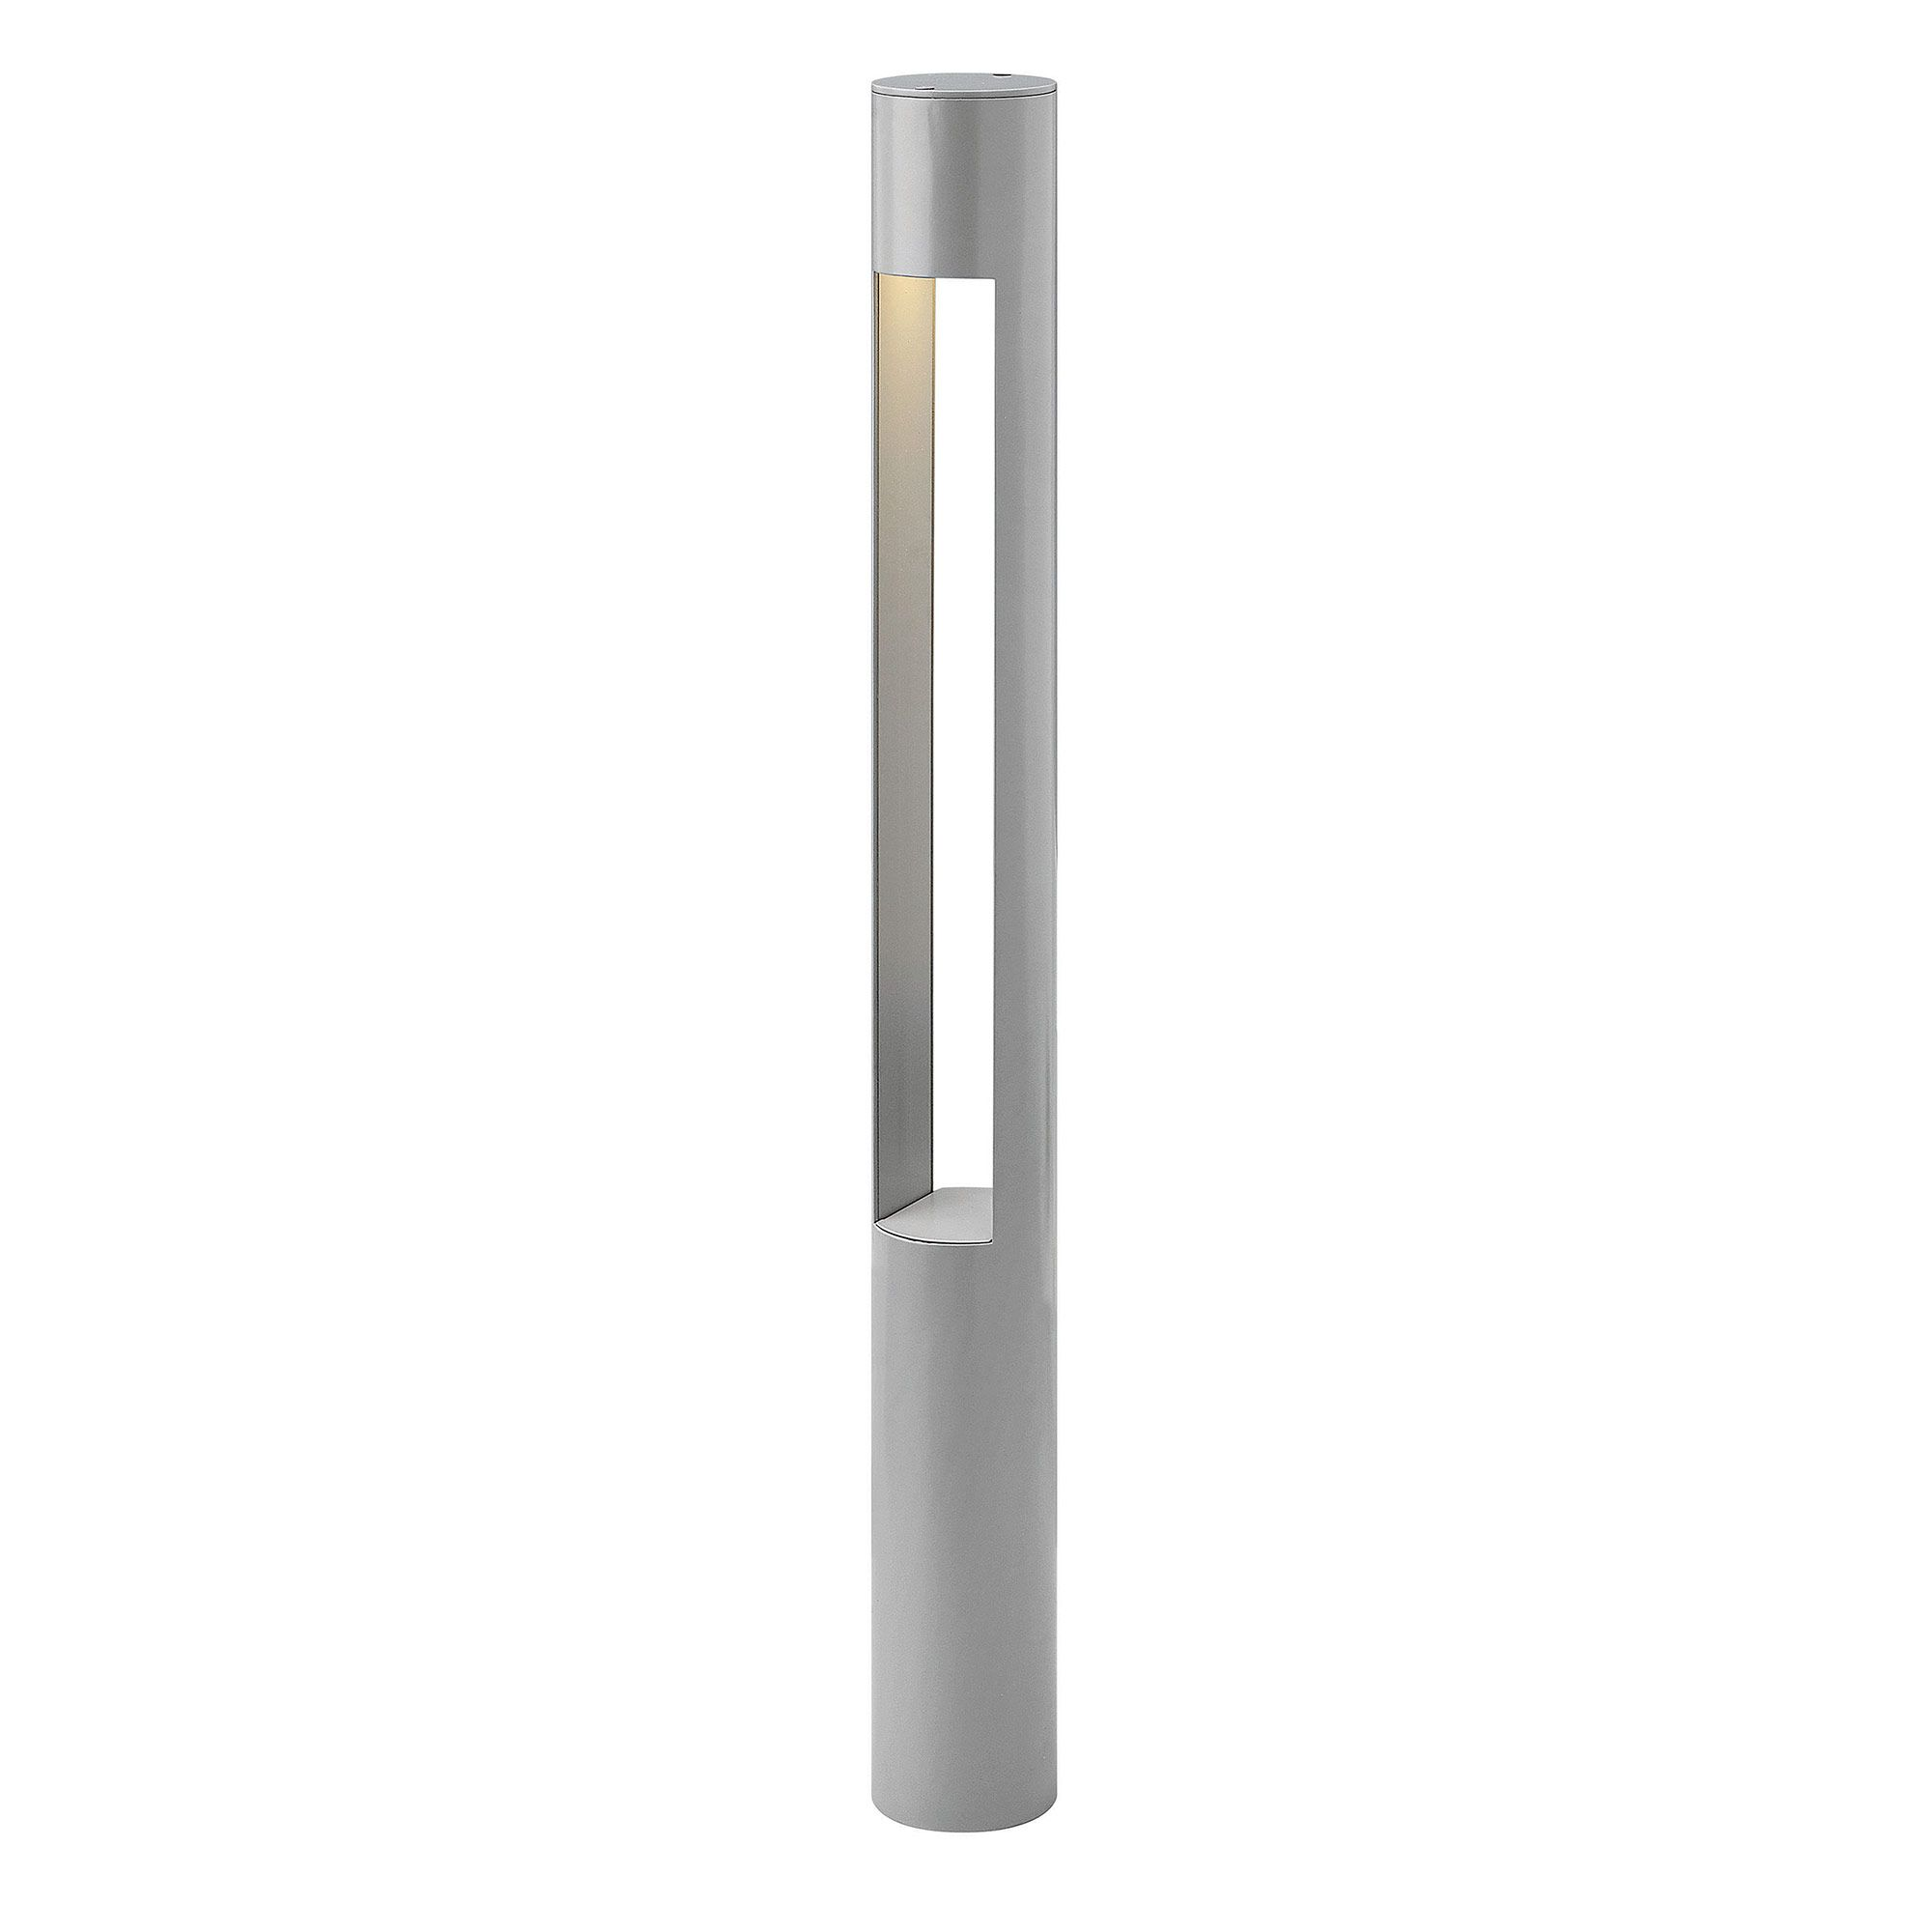 Atlantis Round 12v Path Light Is Available In A Titanium Or Bronze Finish With An Etched Glass Lens Hinkley Lighting Bollard Lighting Led Outdoor Wall Lights